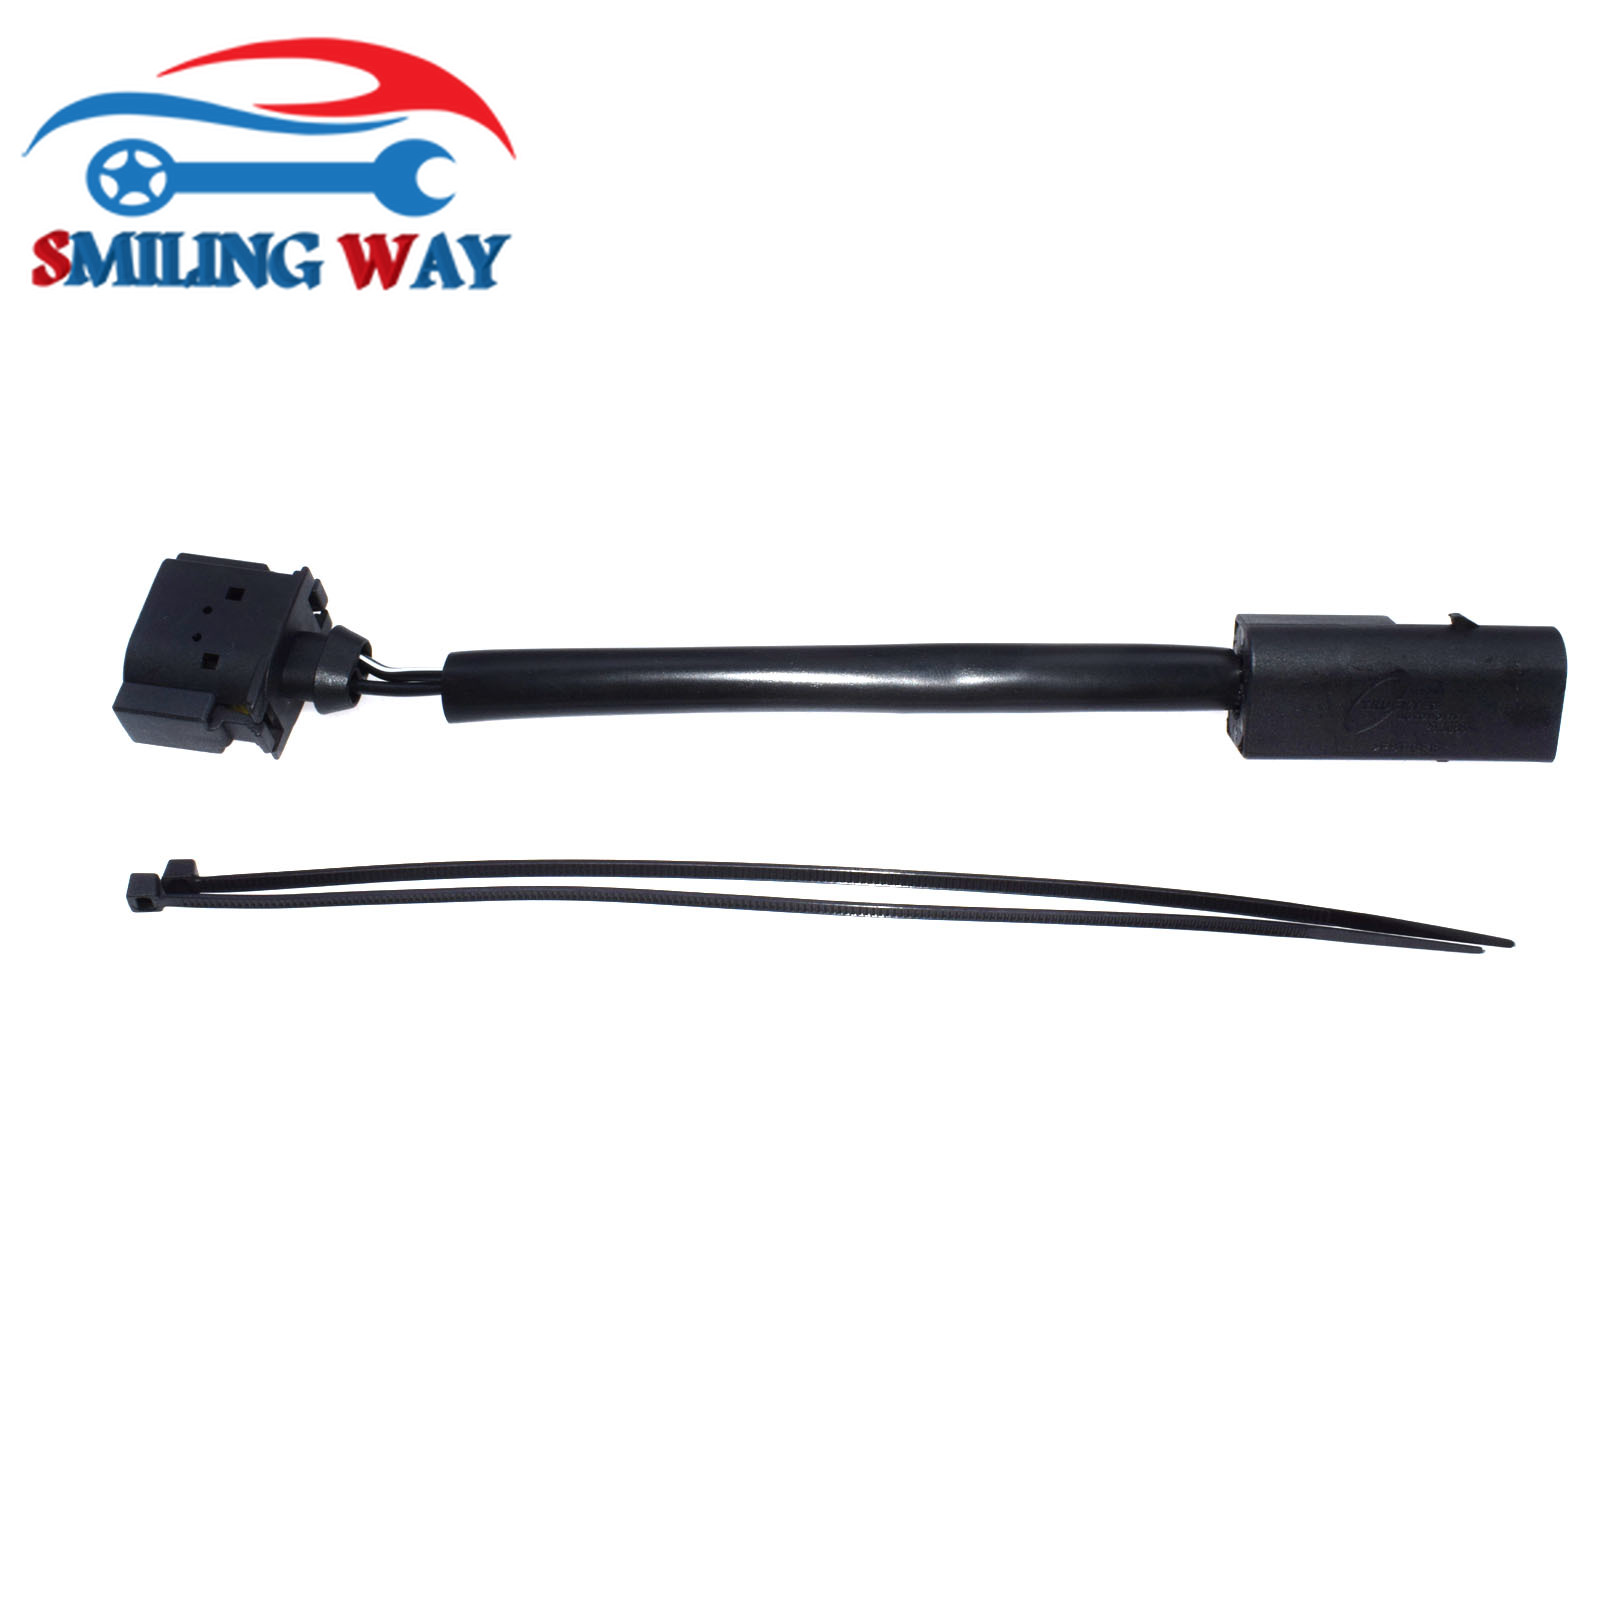 Stupendous Camshaft Adapter Connector Adjuster Wiring Harness Cable For Wiring Digital Resources Tziciprontobusorg